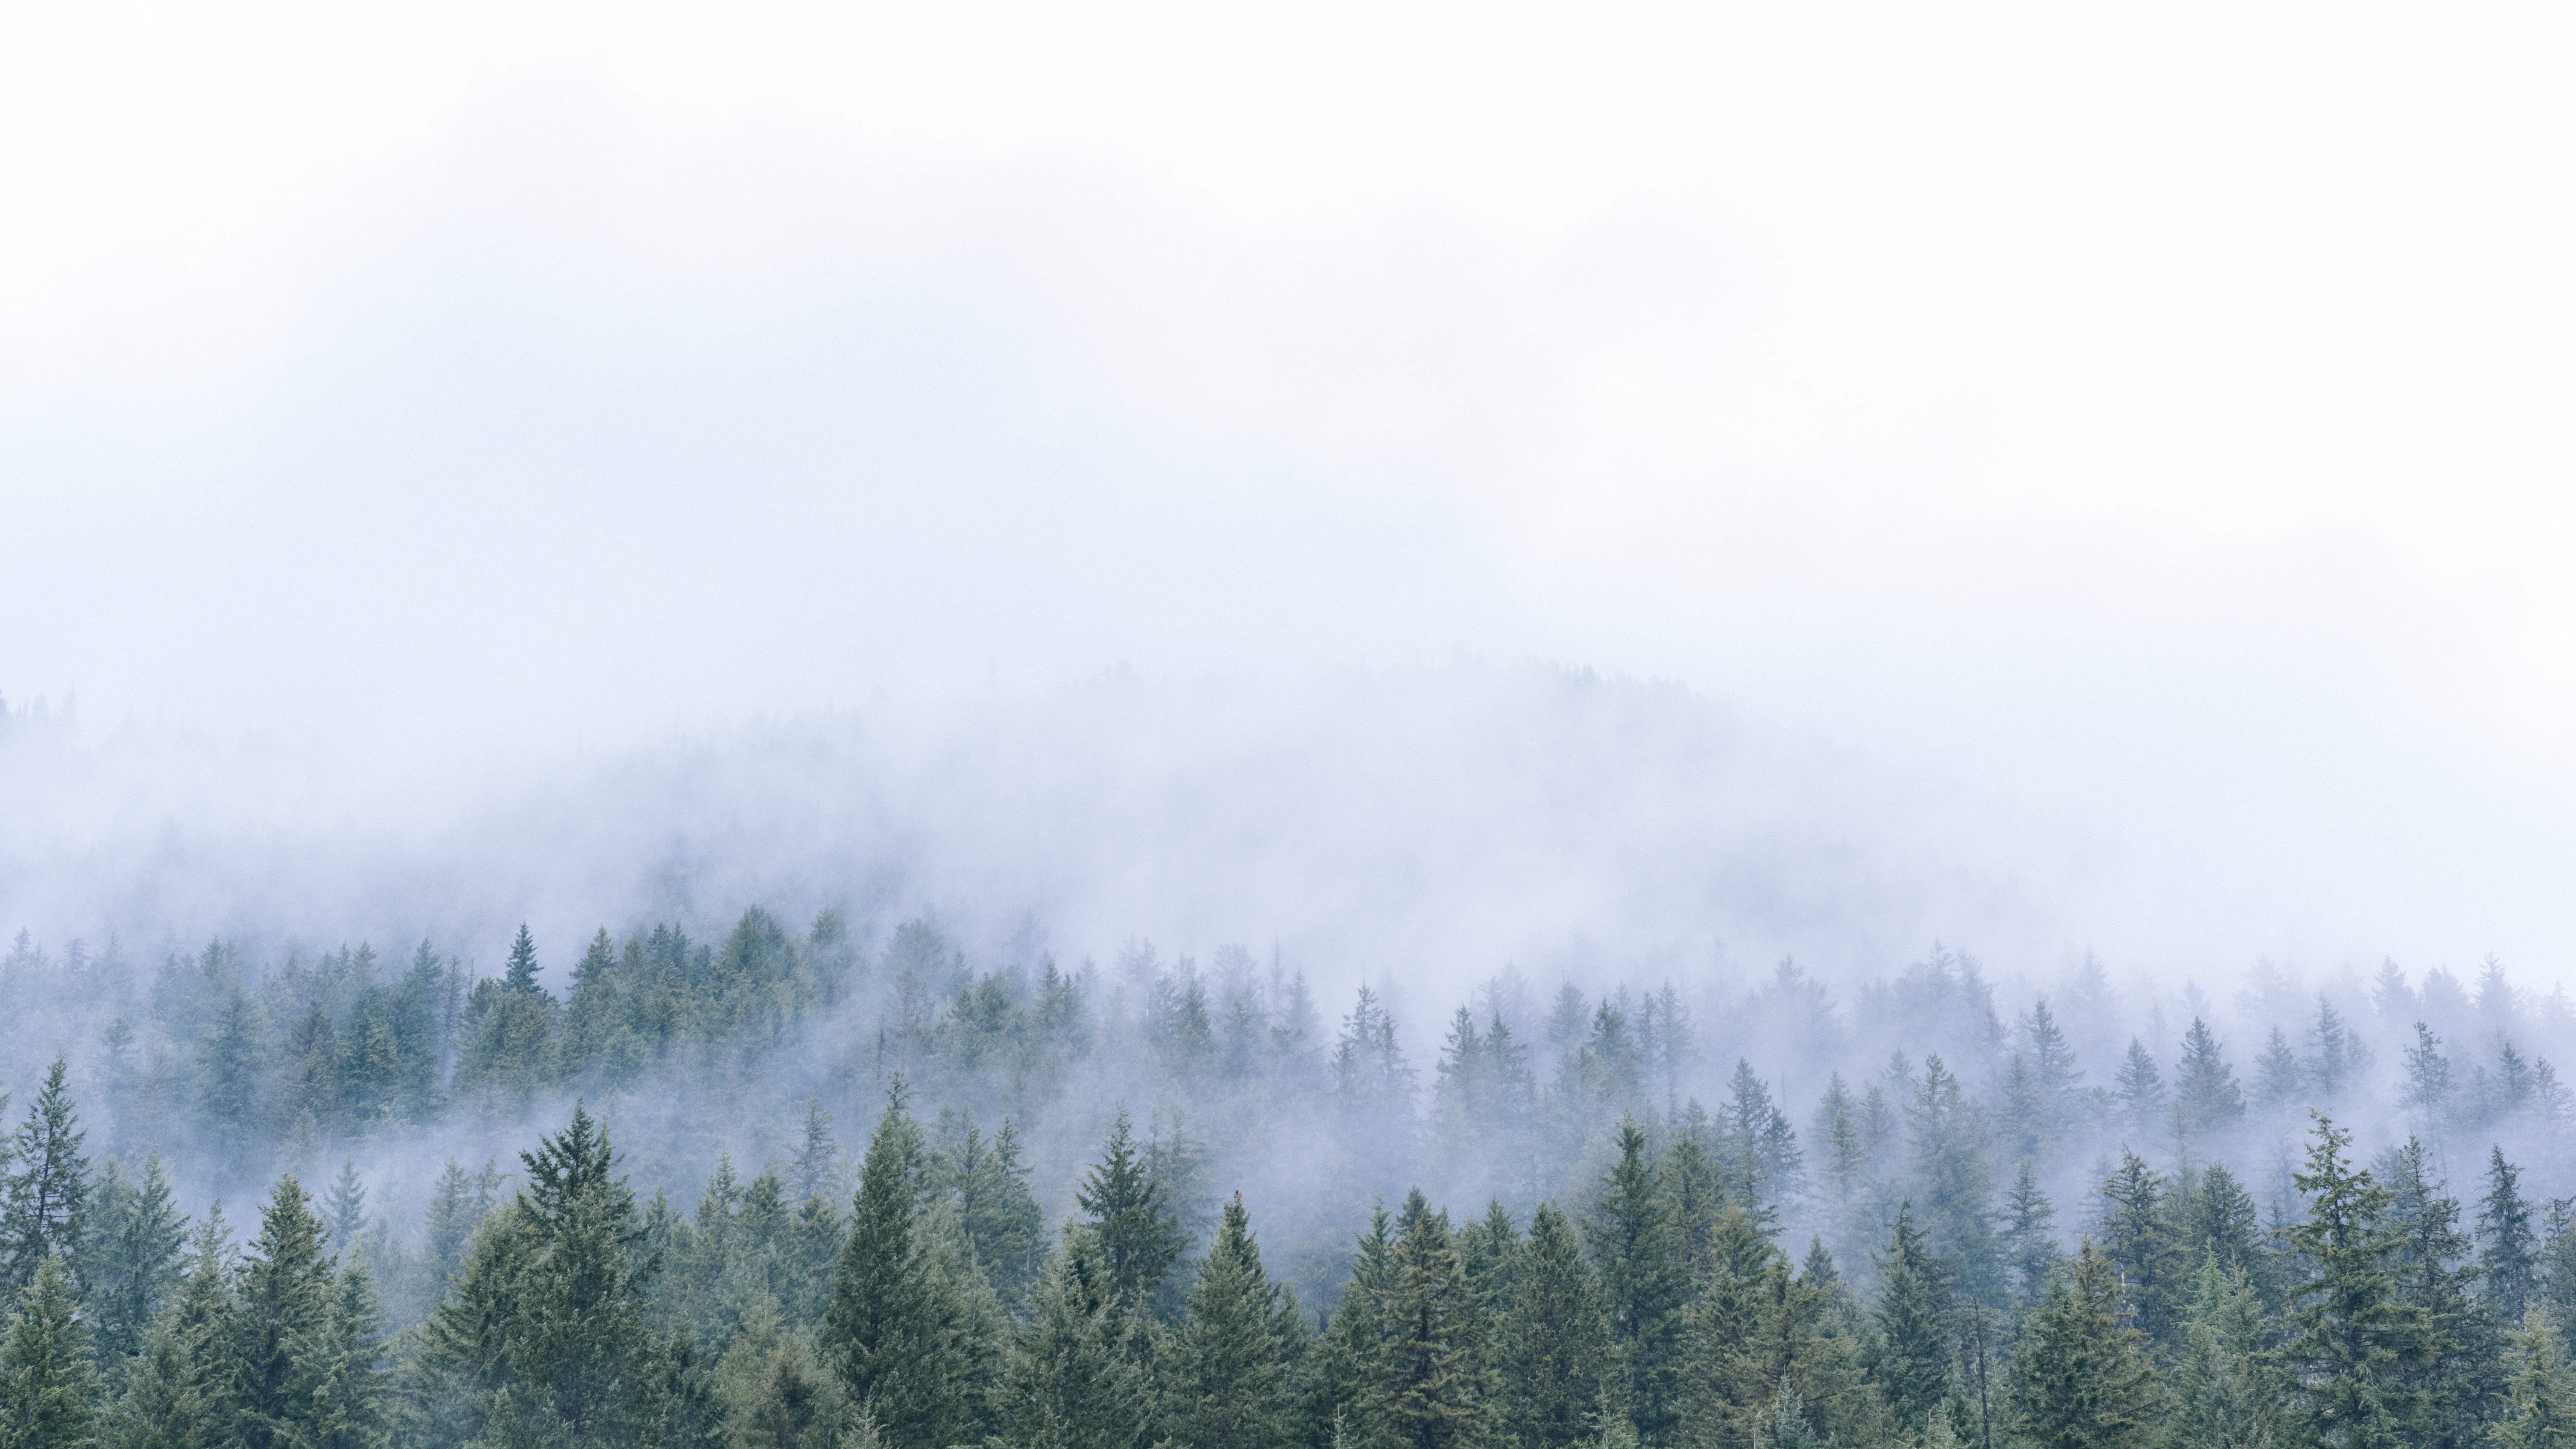 Lines of evergreen trees under fog in Sandon